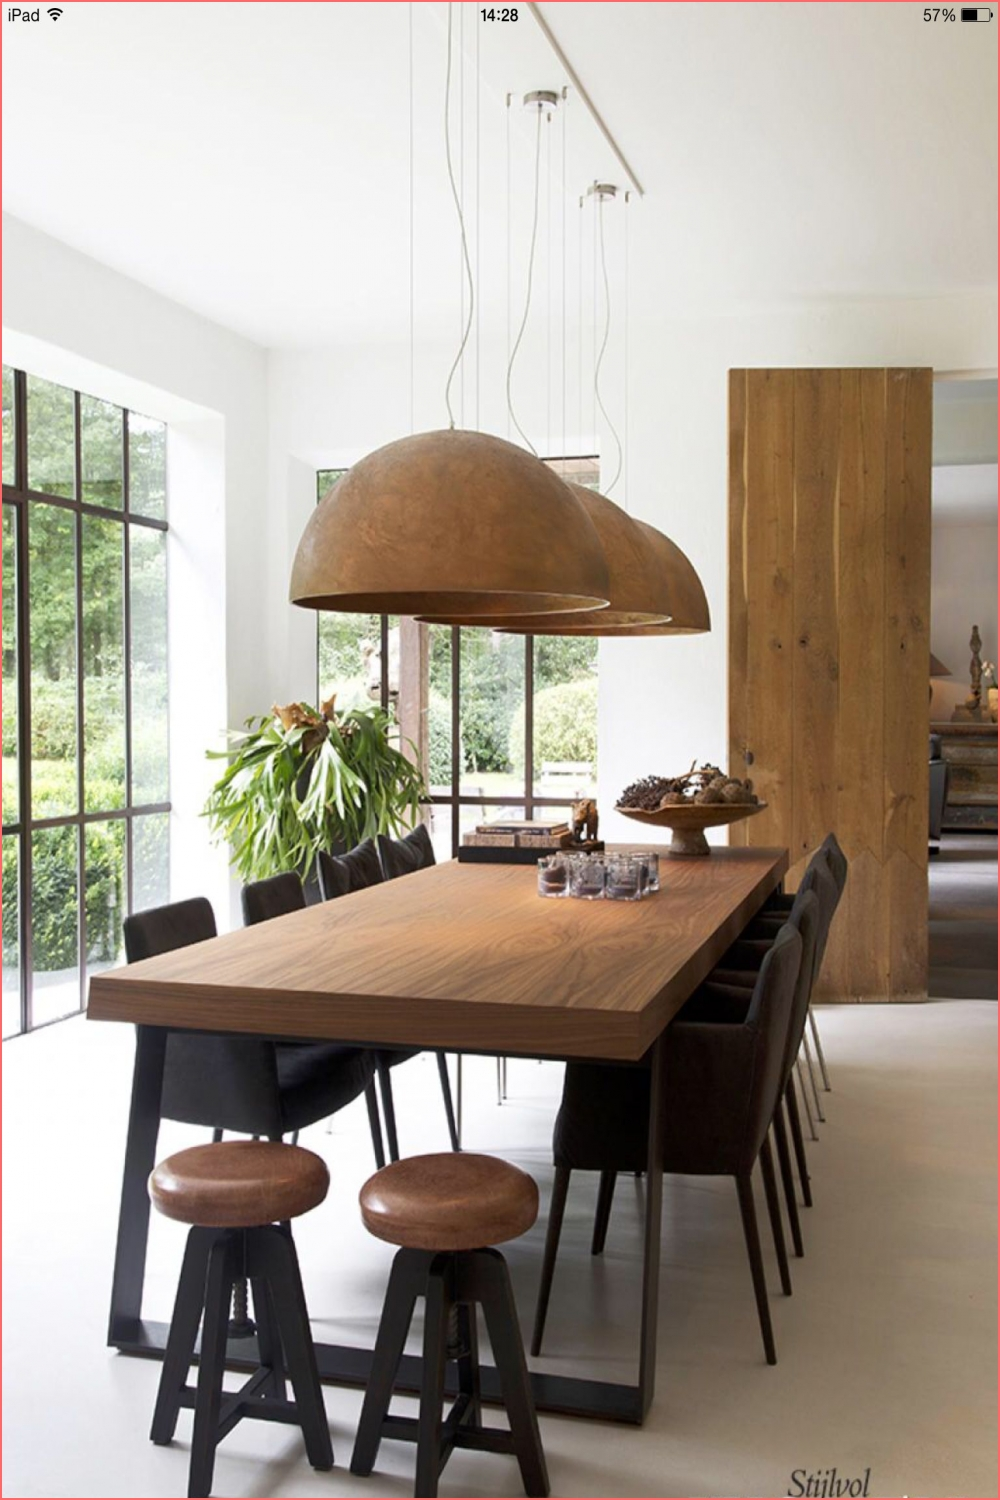 Make it simple but significant learn how to use black in on dining table design on dining table design post on 2020-11-24 16:29:04